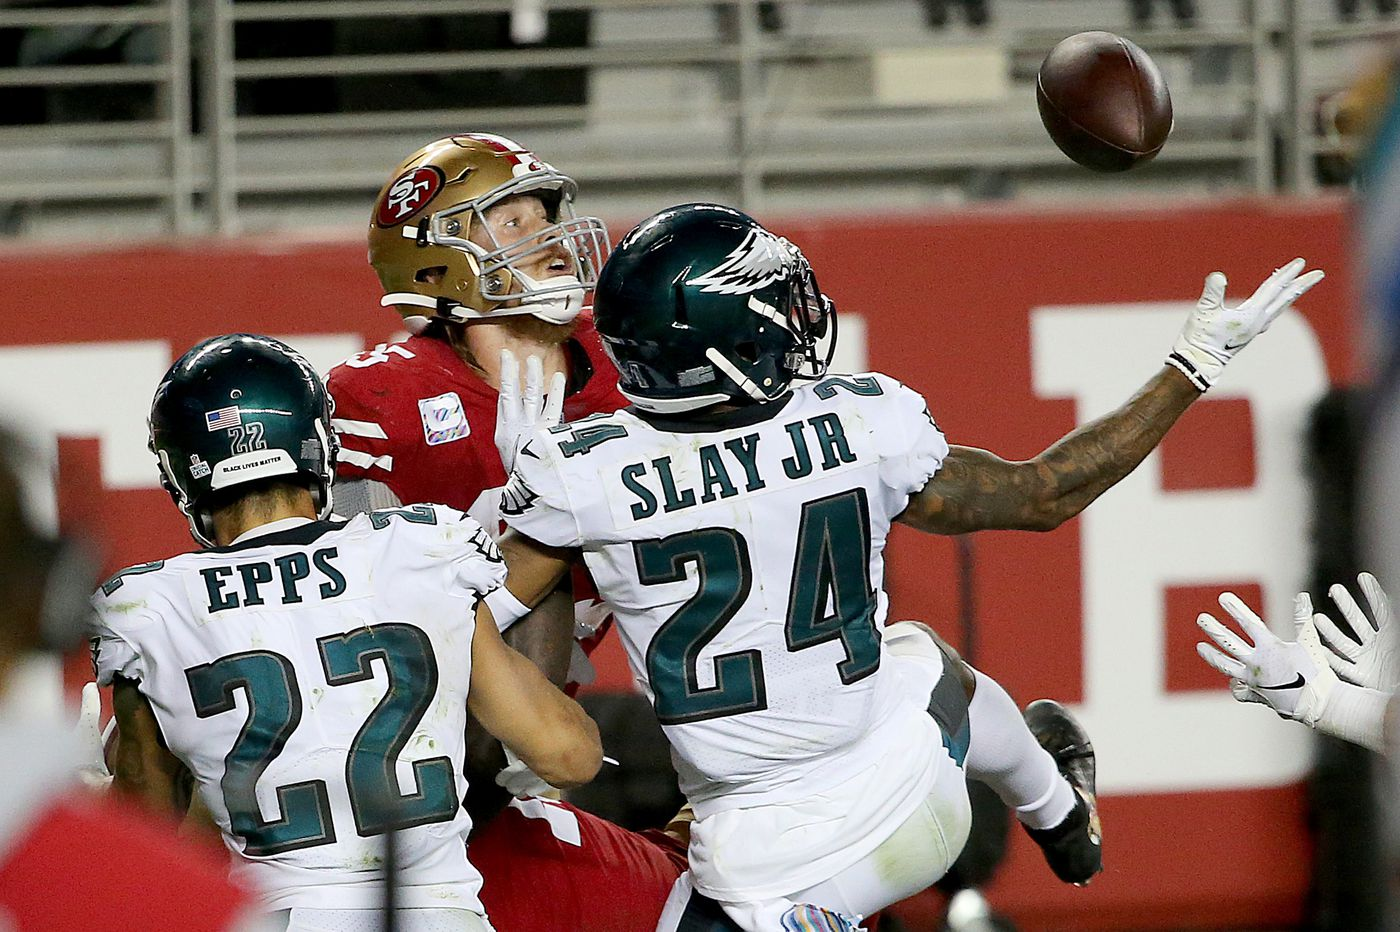 Dave Fipp says the Eagles didn't get shortchanged by clock operator on the 49ers' one-second onside kick